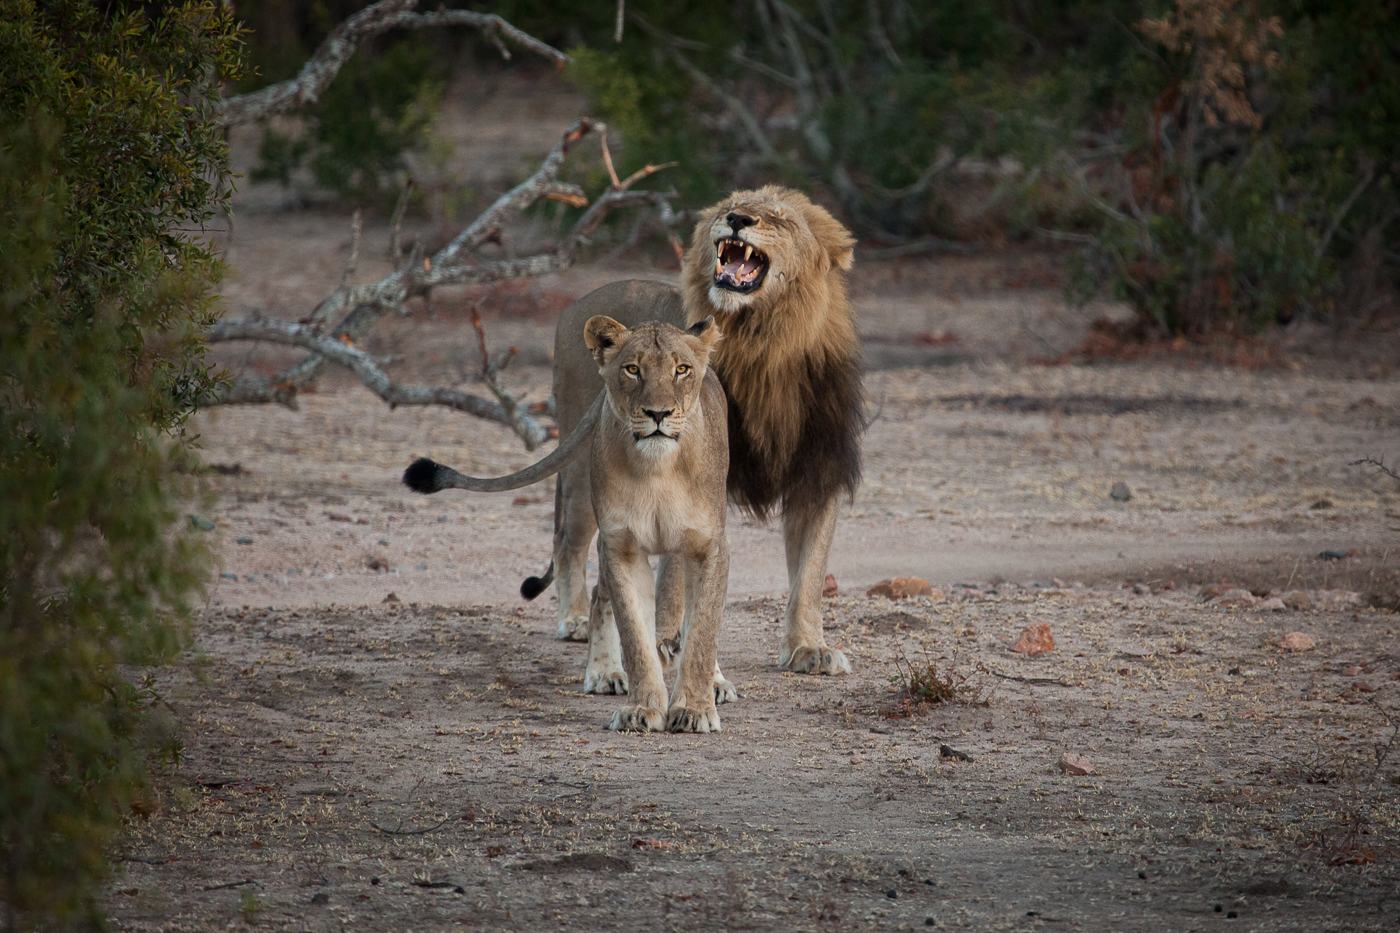 flehmen, mhangeni lioness and matimba male